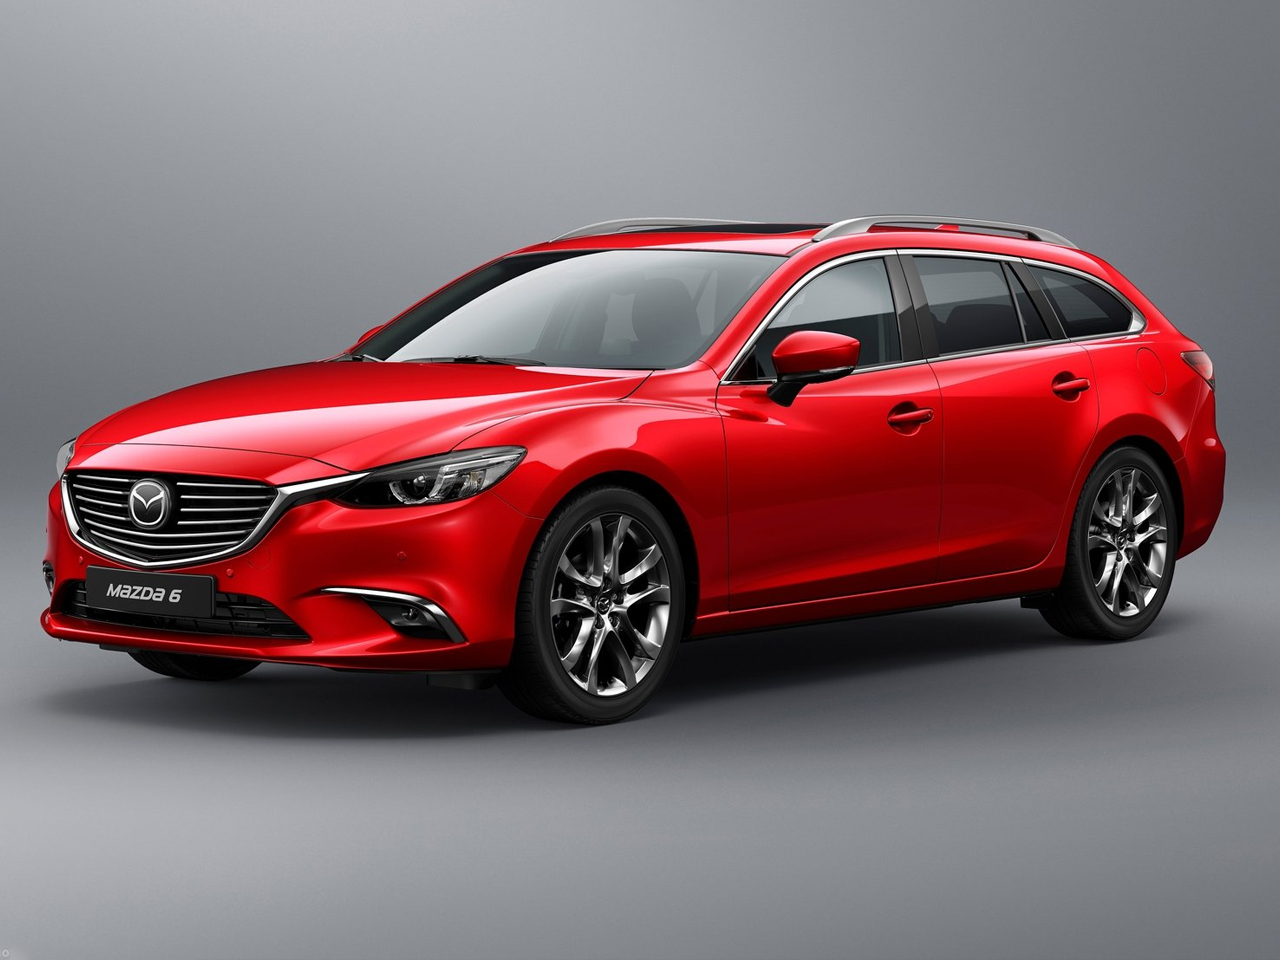 mazda mazda6 wagon 2012 2 2 skyactiv d 175cv autom tico luxury. Black Bedroom Furniture Sets. Home Design Ideas